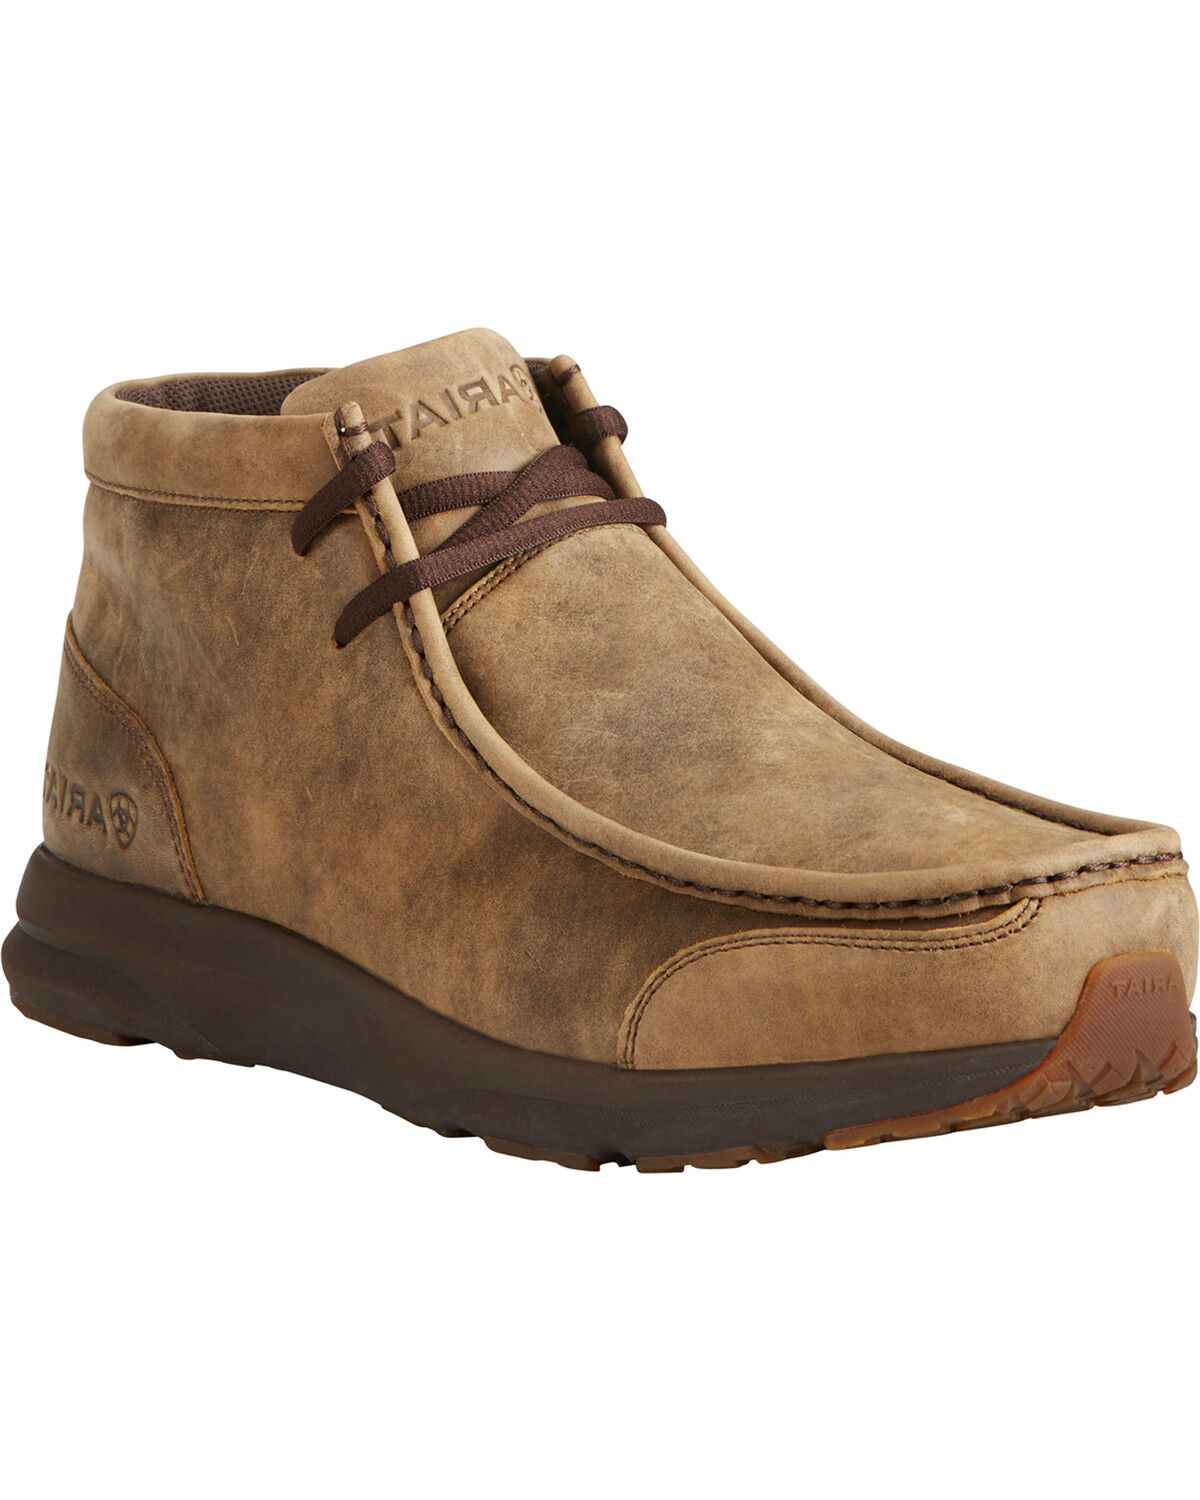 Men's Casual Western Boots - Boot Barn